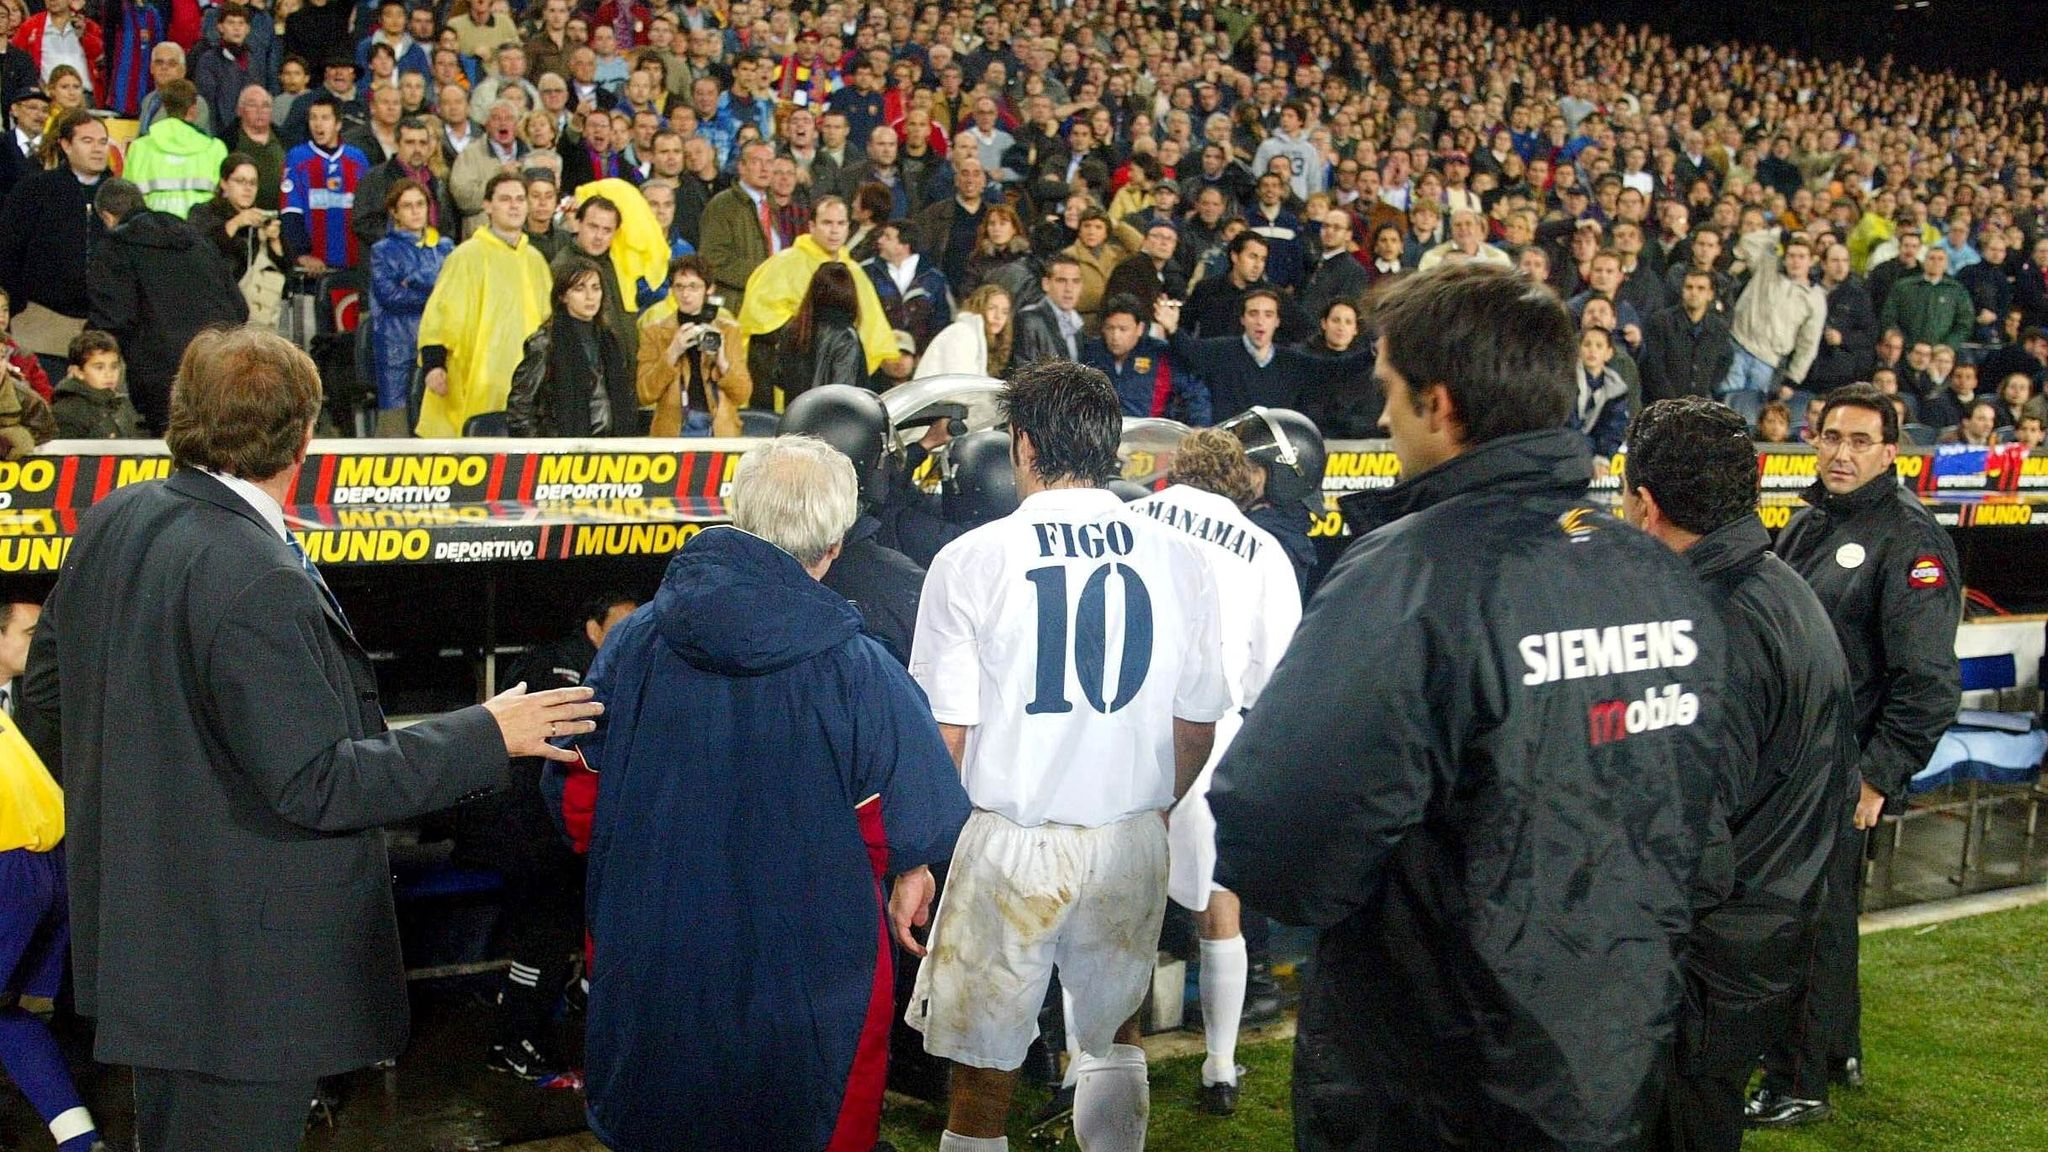 El Clasico moments: Luis Figo's return to the Nou Camp and the pig's